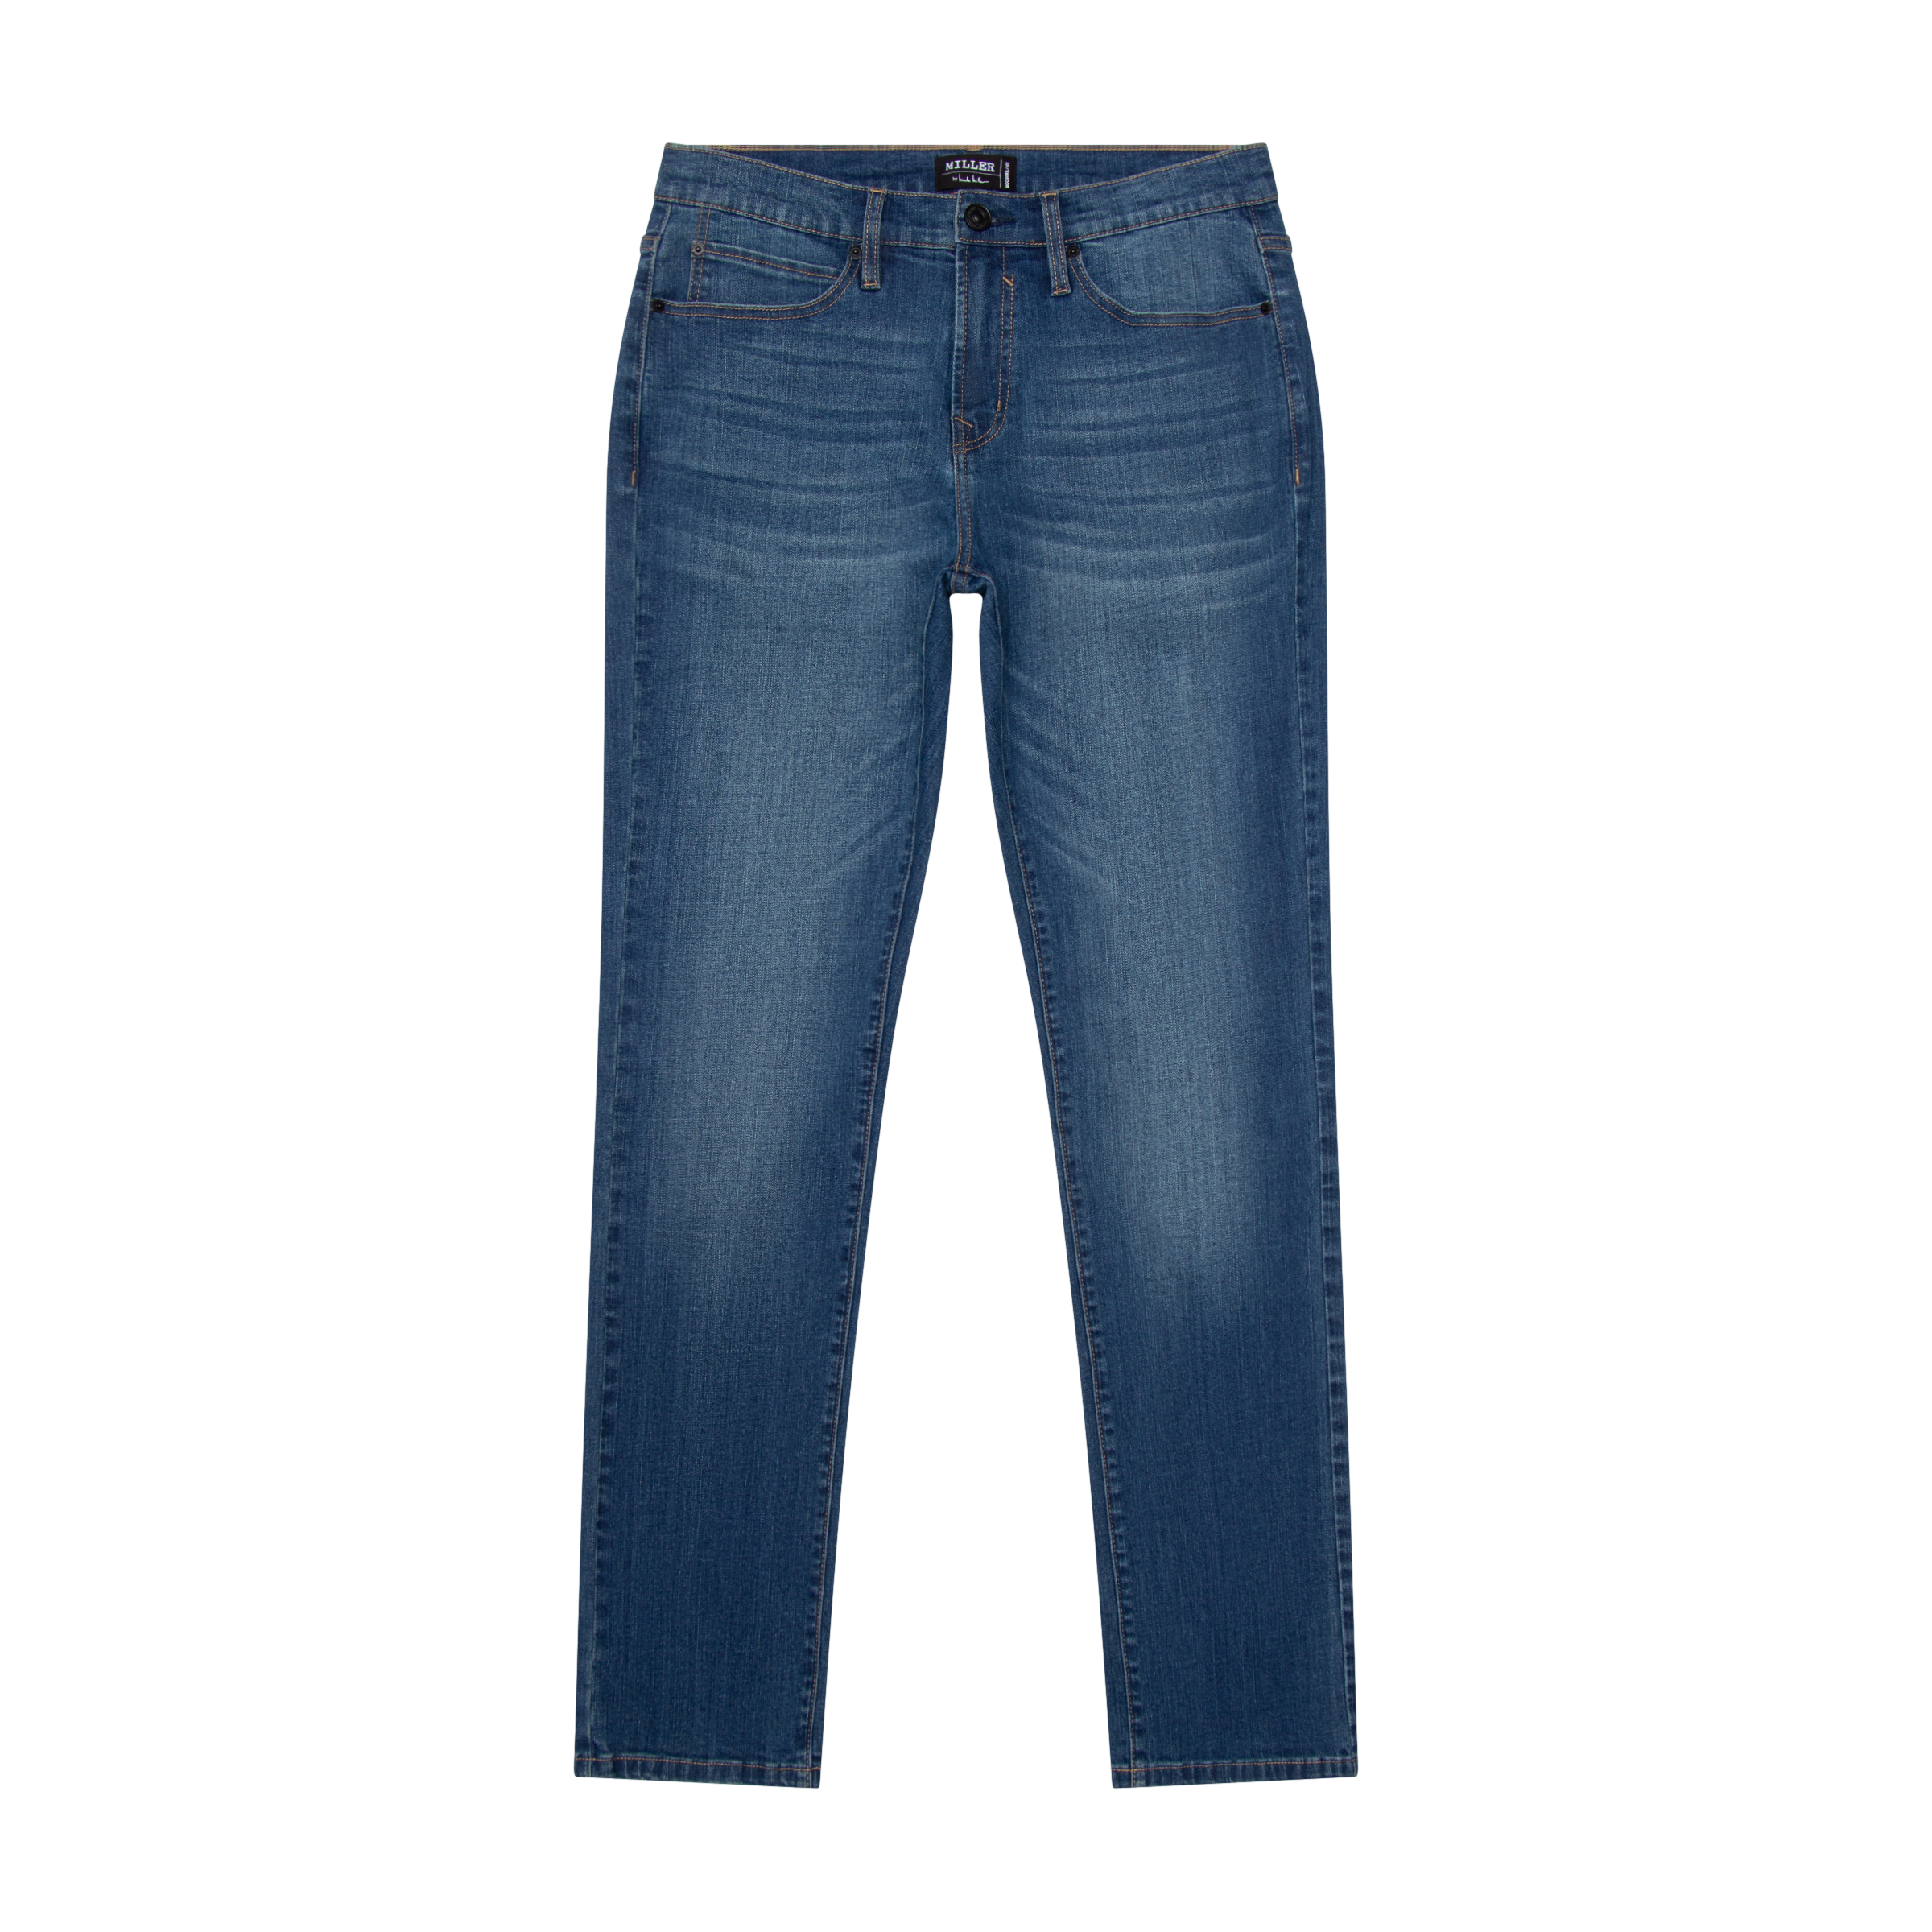 jeans product photo